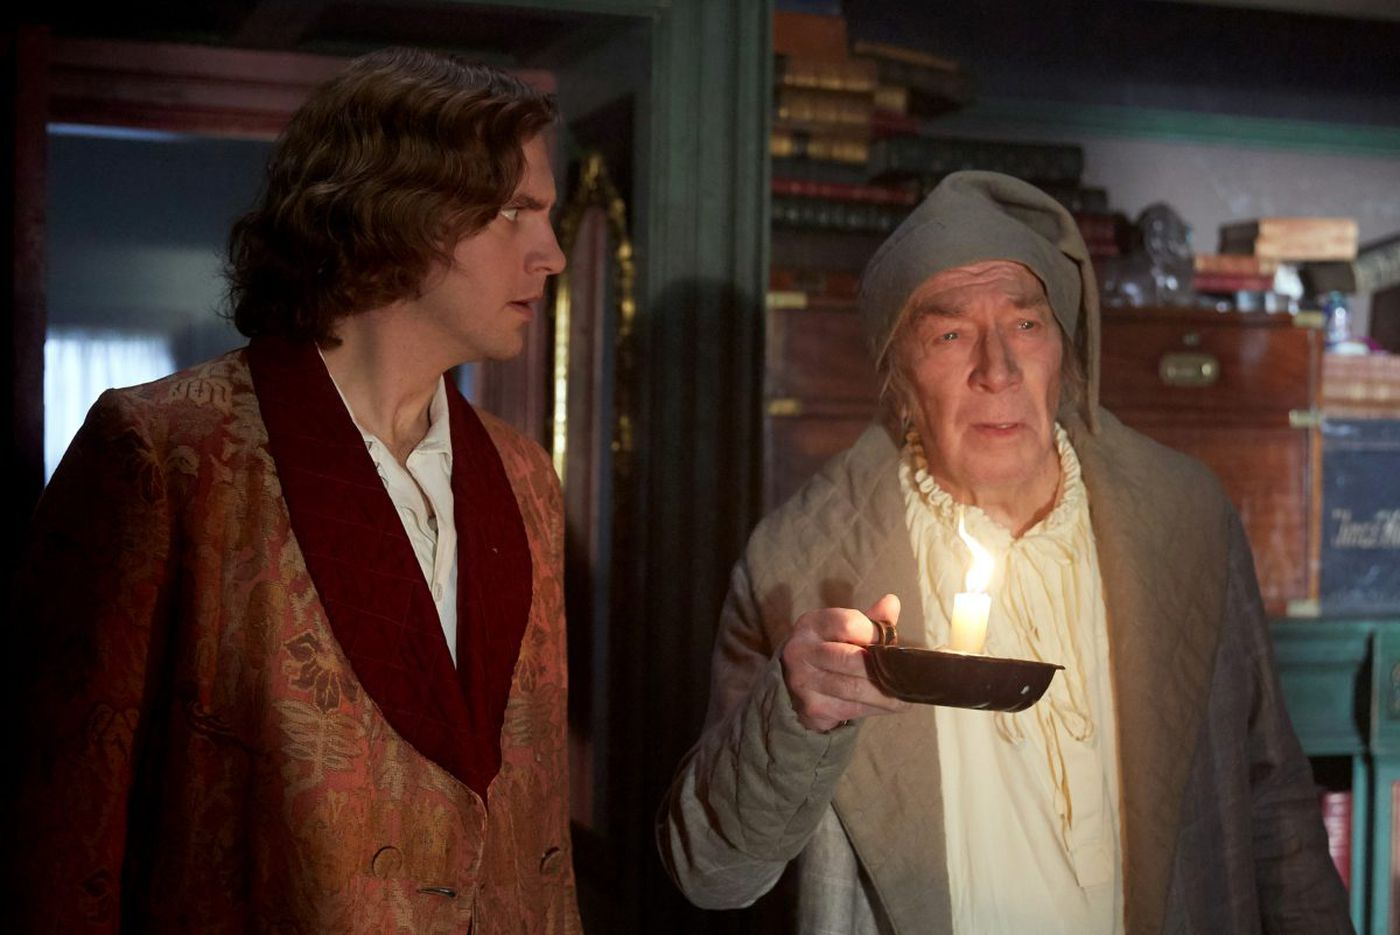 The gift of empathy - courtesy of Scrooge and his creator Charles Dickens